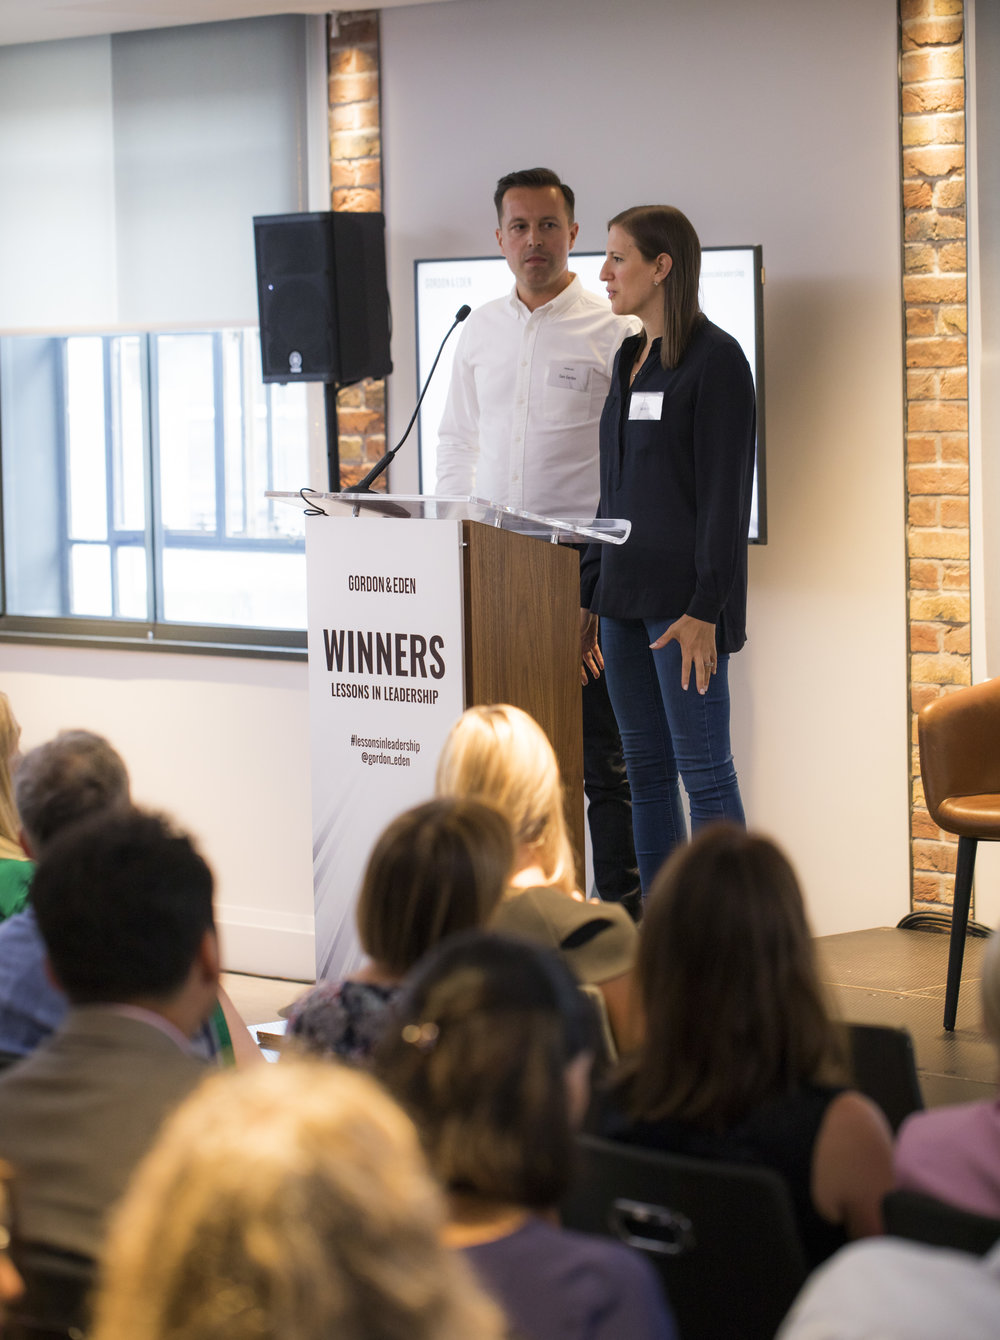 Gordon and Eden - Winners Event - London  - by Jeremy Freedman 2018_71.JPG